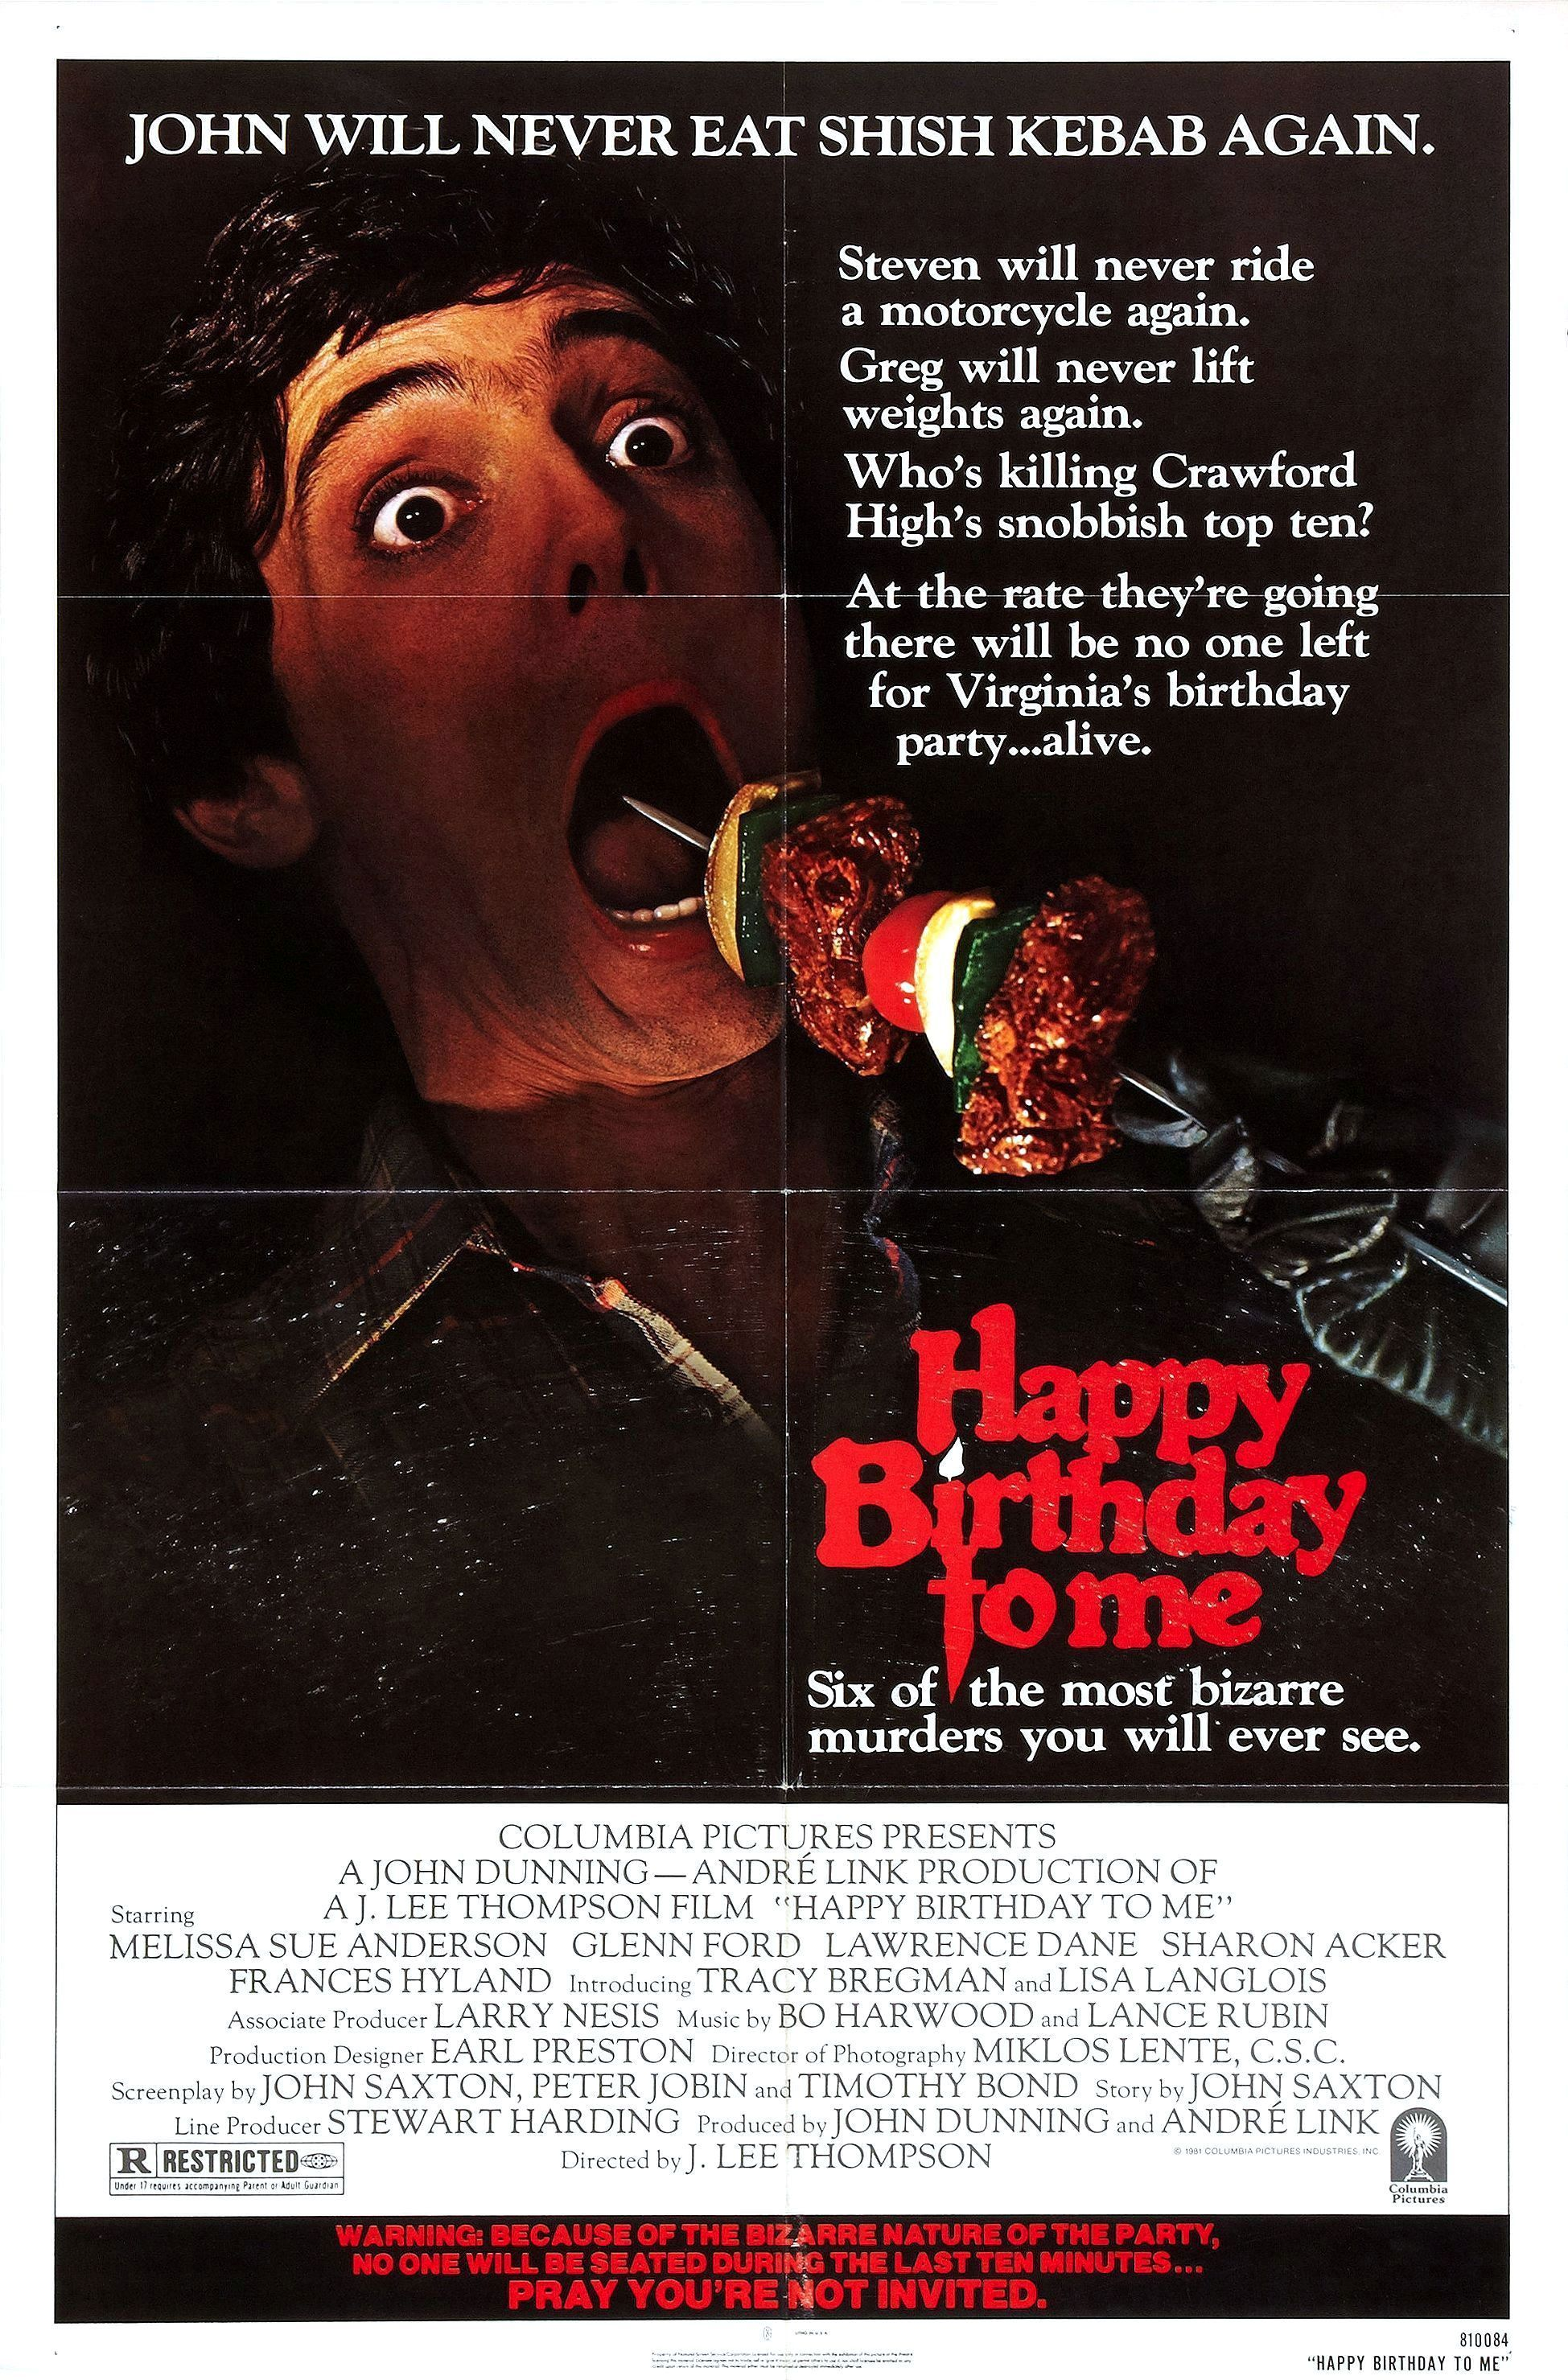 22. Happy Birthday To Me (1981) - One of the first to cash in on the slasher boom, Happy Birthday to Me is a wild, weird smattering of the slasher genre we know now, TV soaps and giallo. With a number of well conceived red herrings, bonkers storytelling and a climax for the ages, the 81 slasher still needs a wider audience, especially within group viewings.